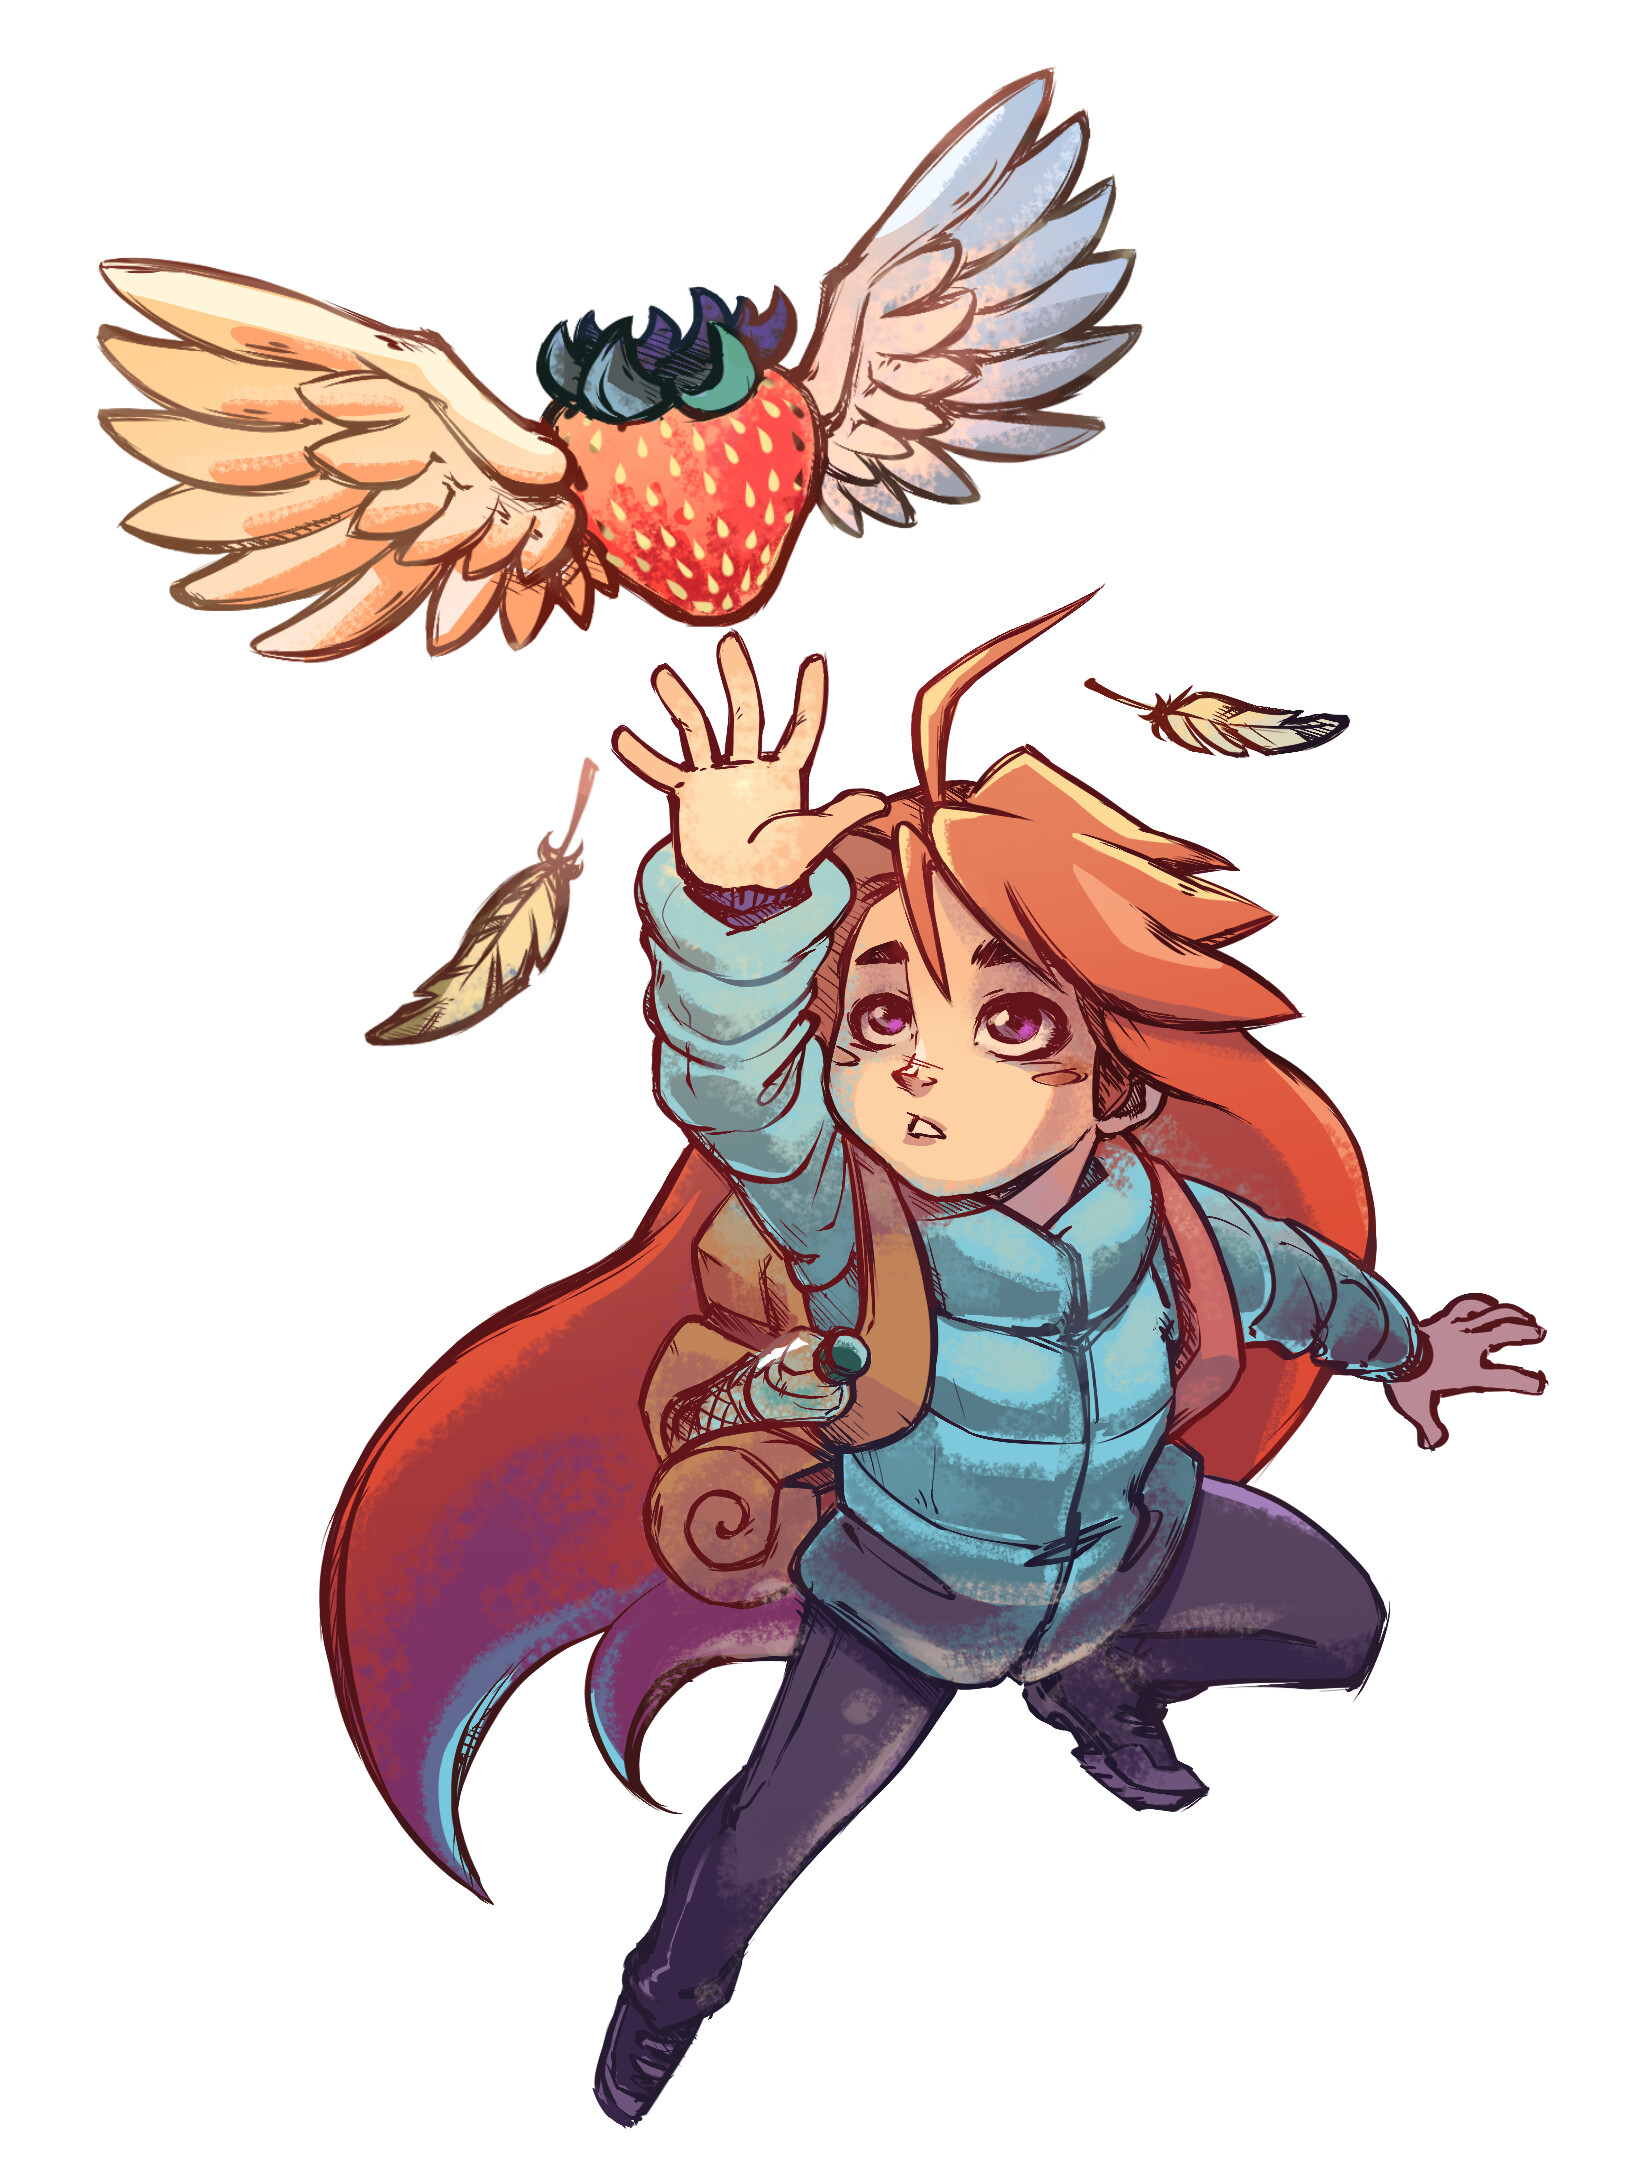 Original Concept from the amazing game Celeste :)